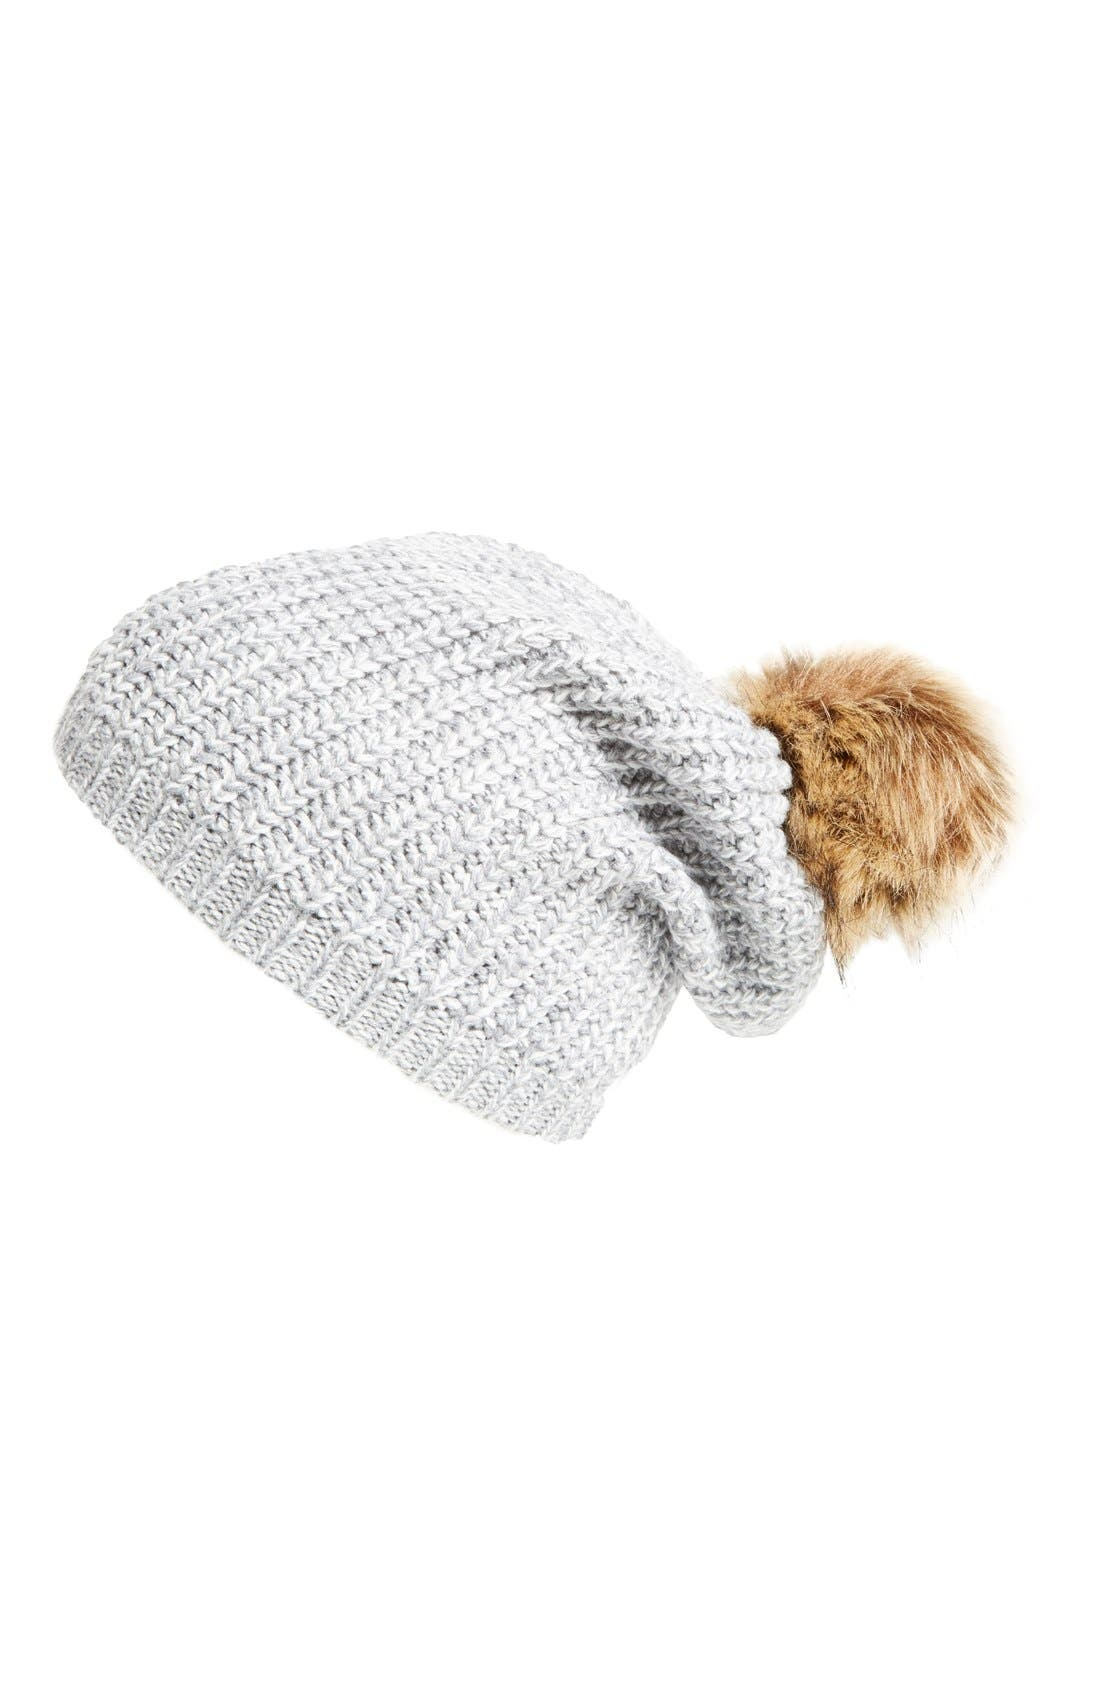 Alternate Image 1 Selected - Sole Society Pom Knit Beanie